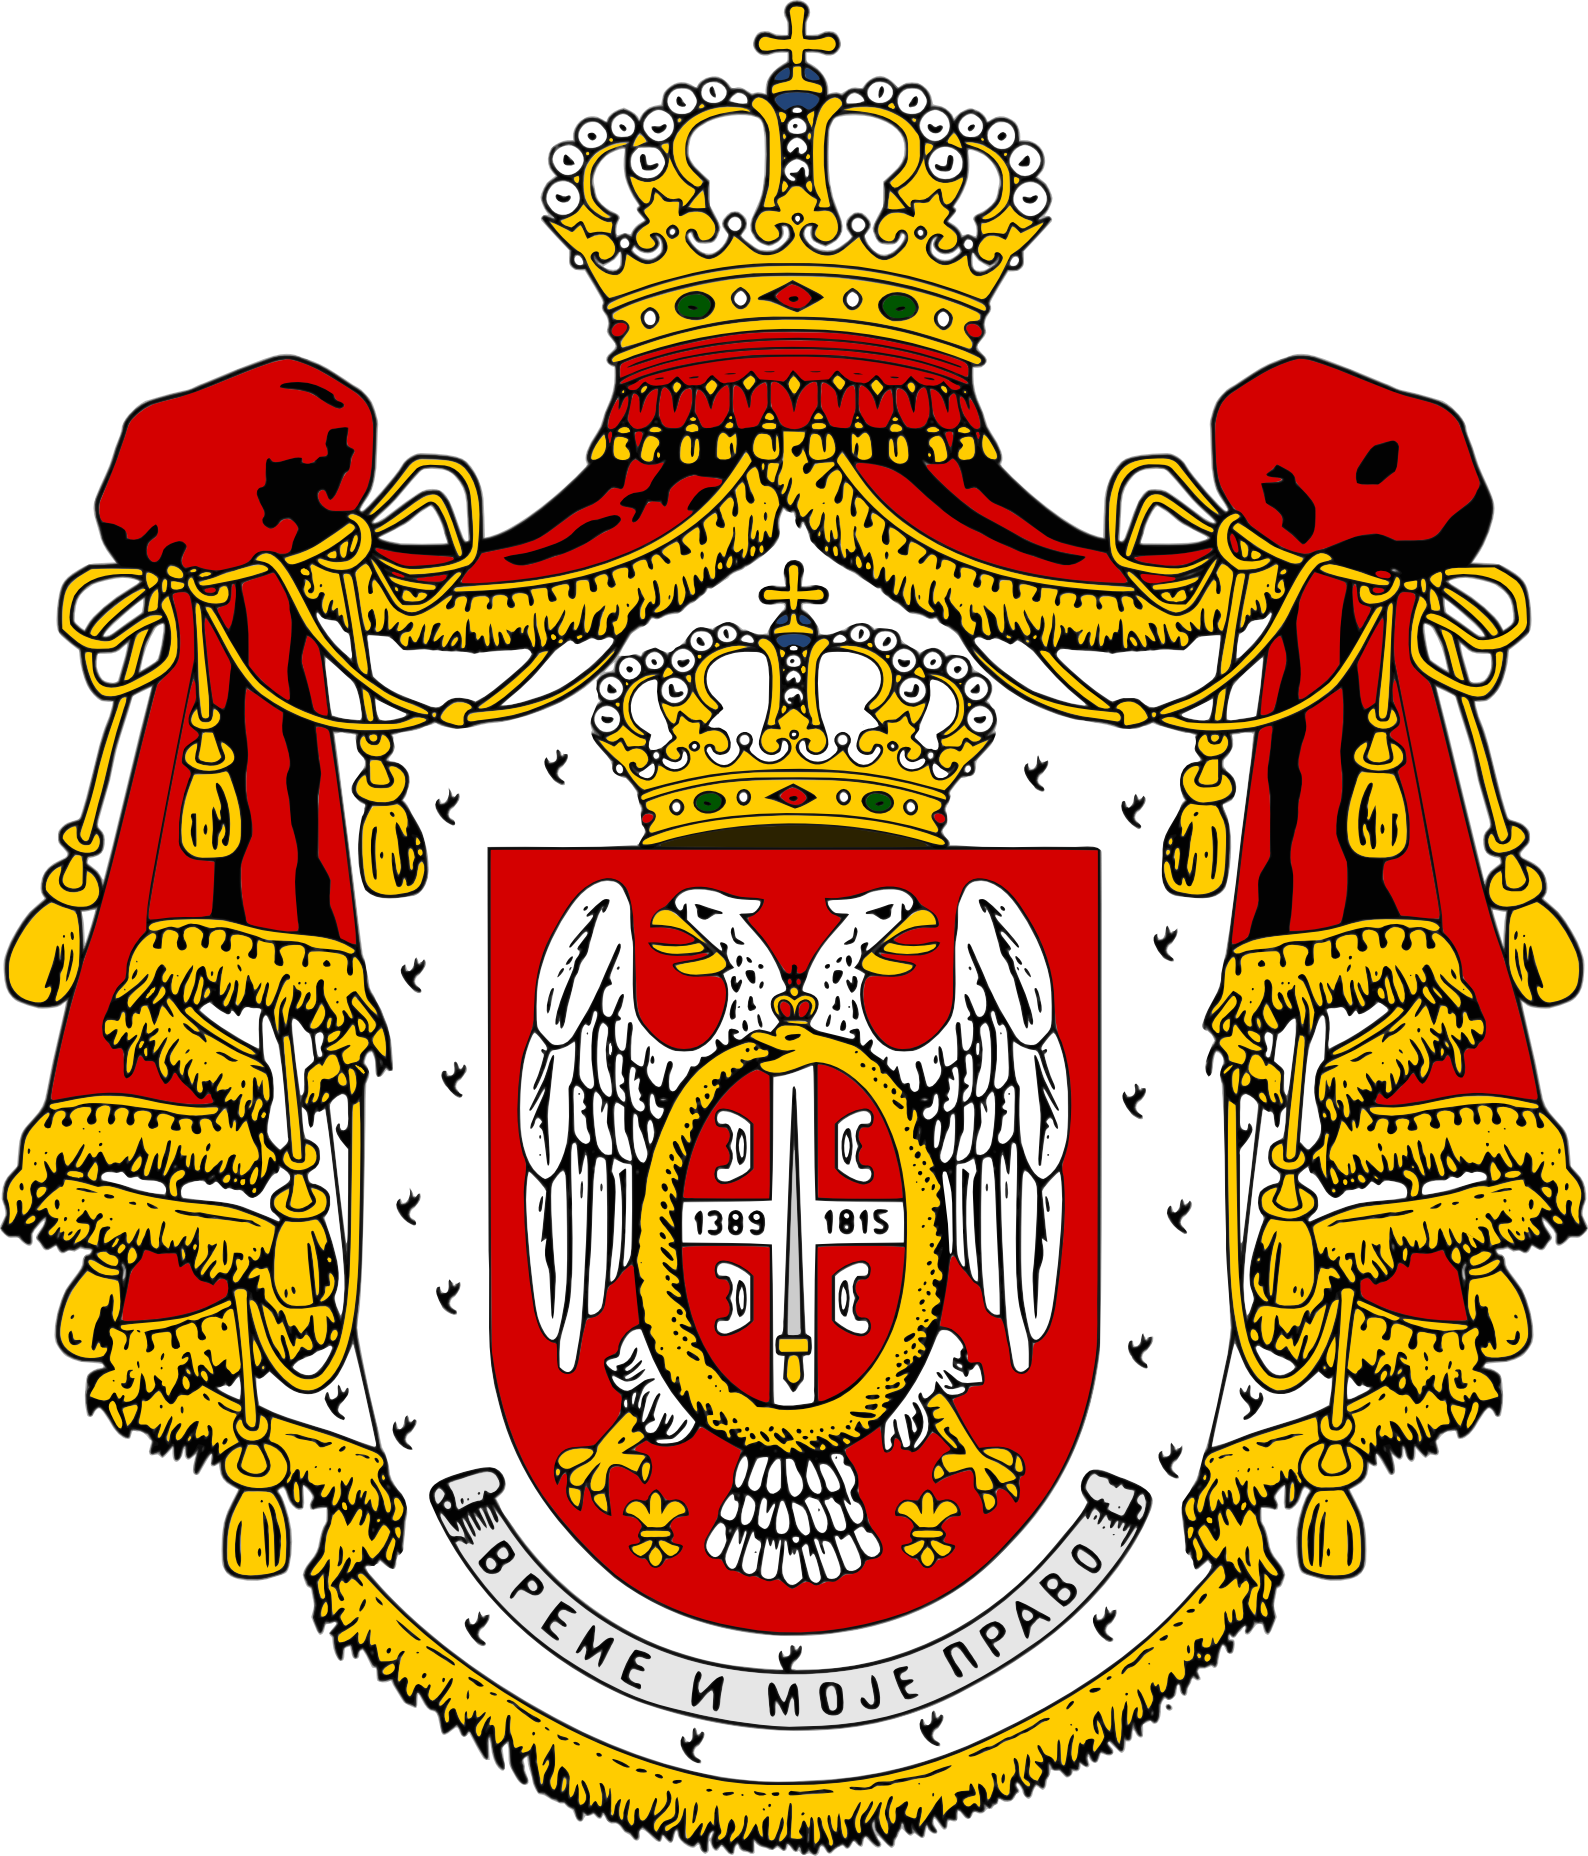 [Слика: Coat_of_Arms_of_the_Obrenovic_Royal_Family.png]